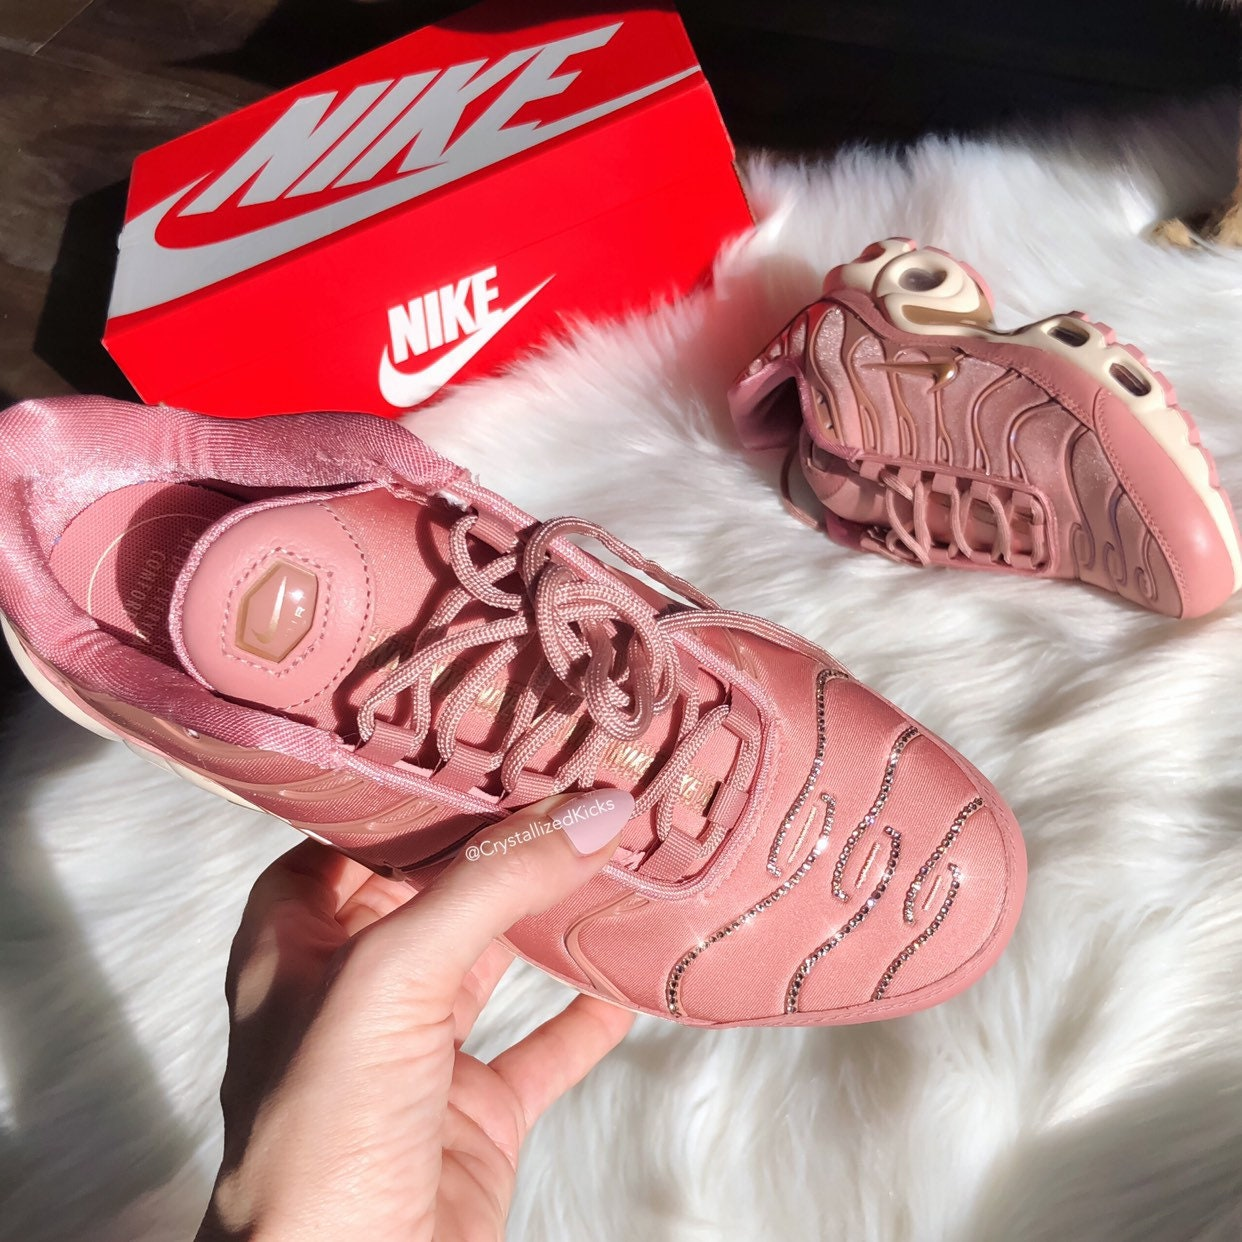 newest d502b d4a74 Swarovski Nike Air Max Plus Women's Made with Swarovski Crystals - Rust Pink